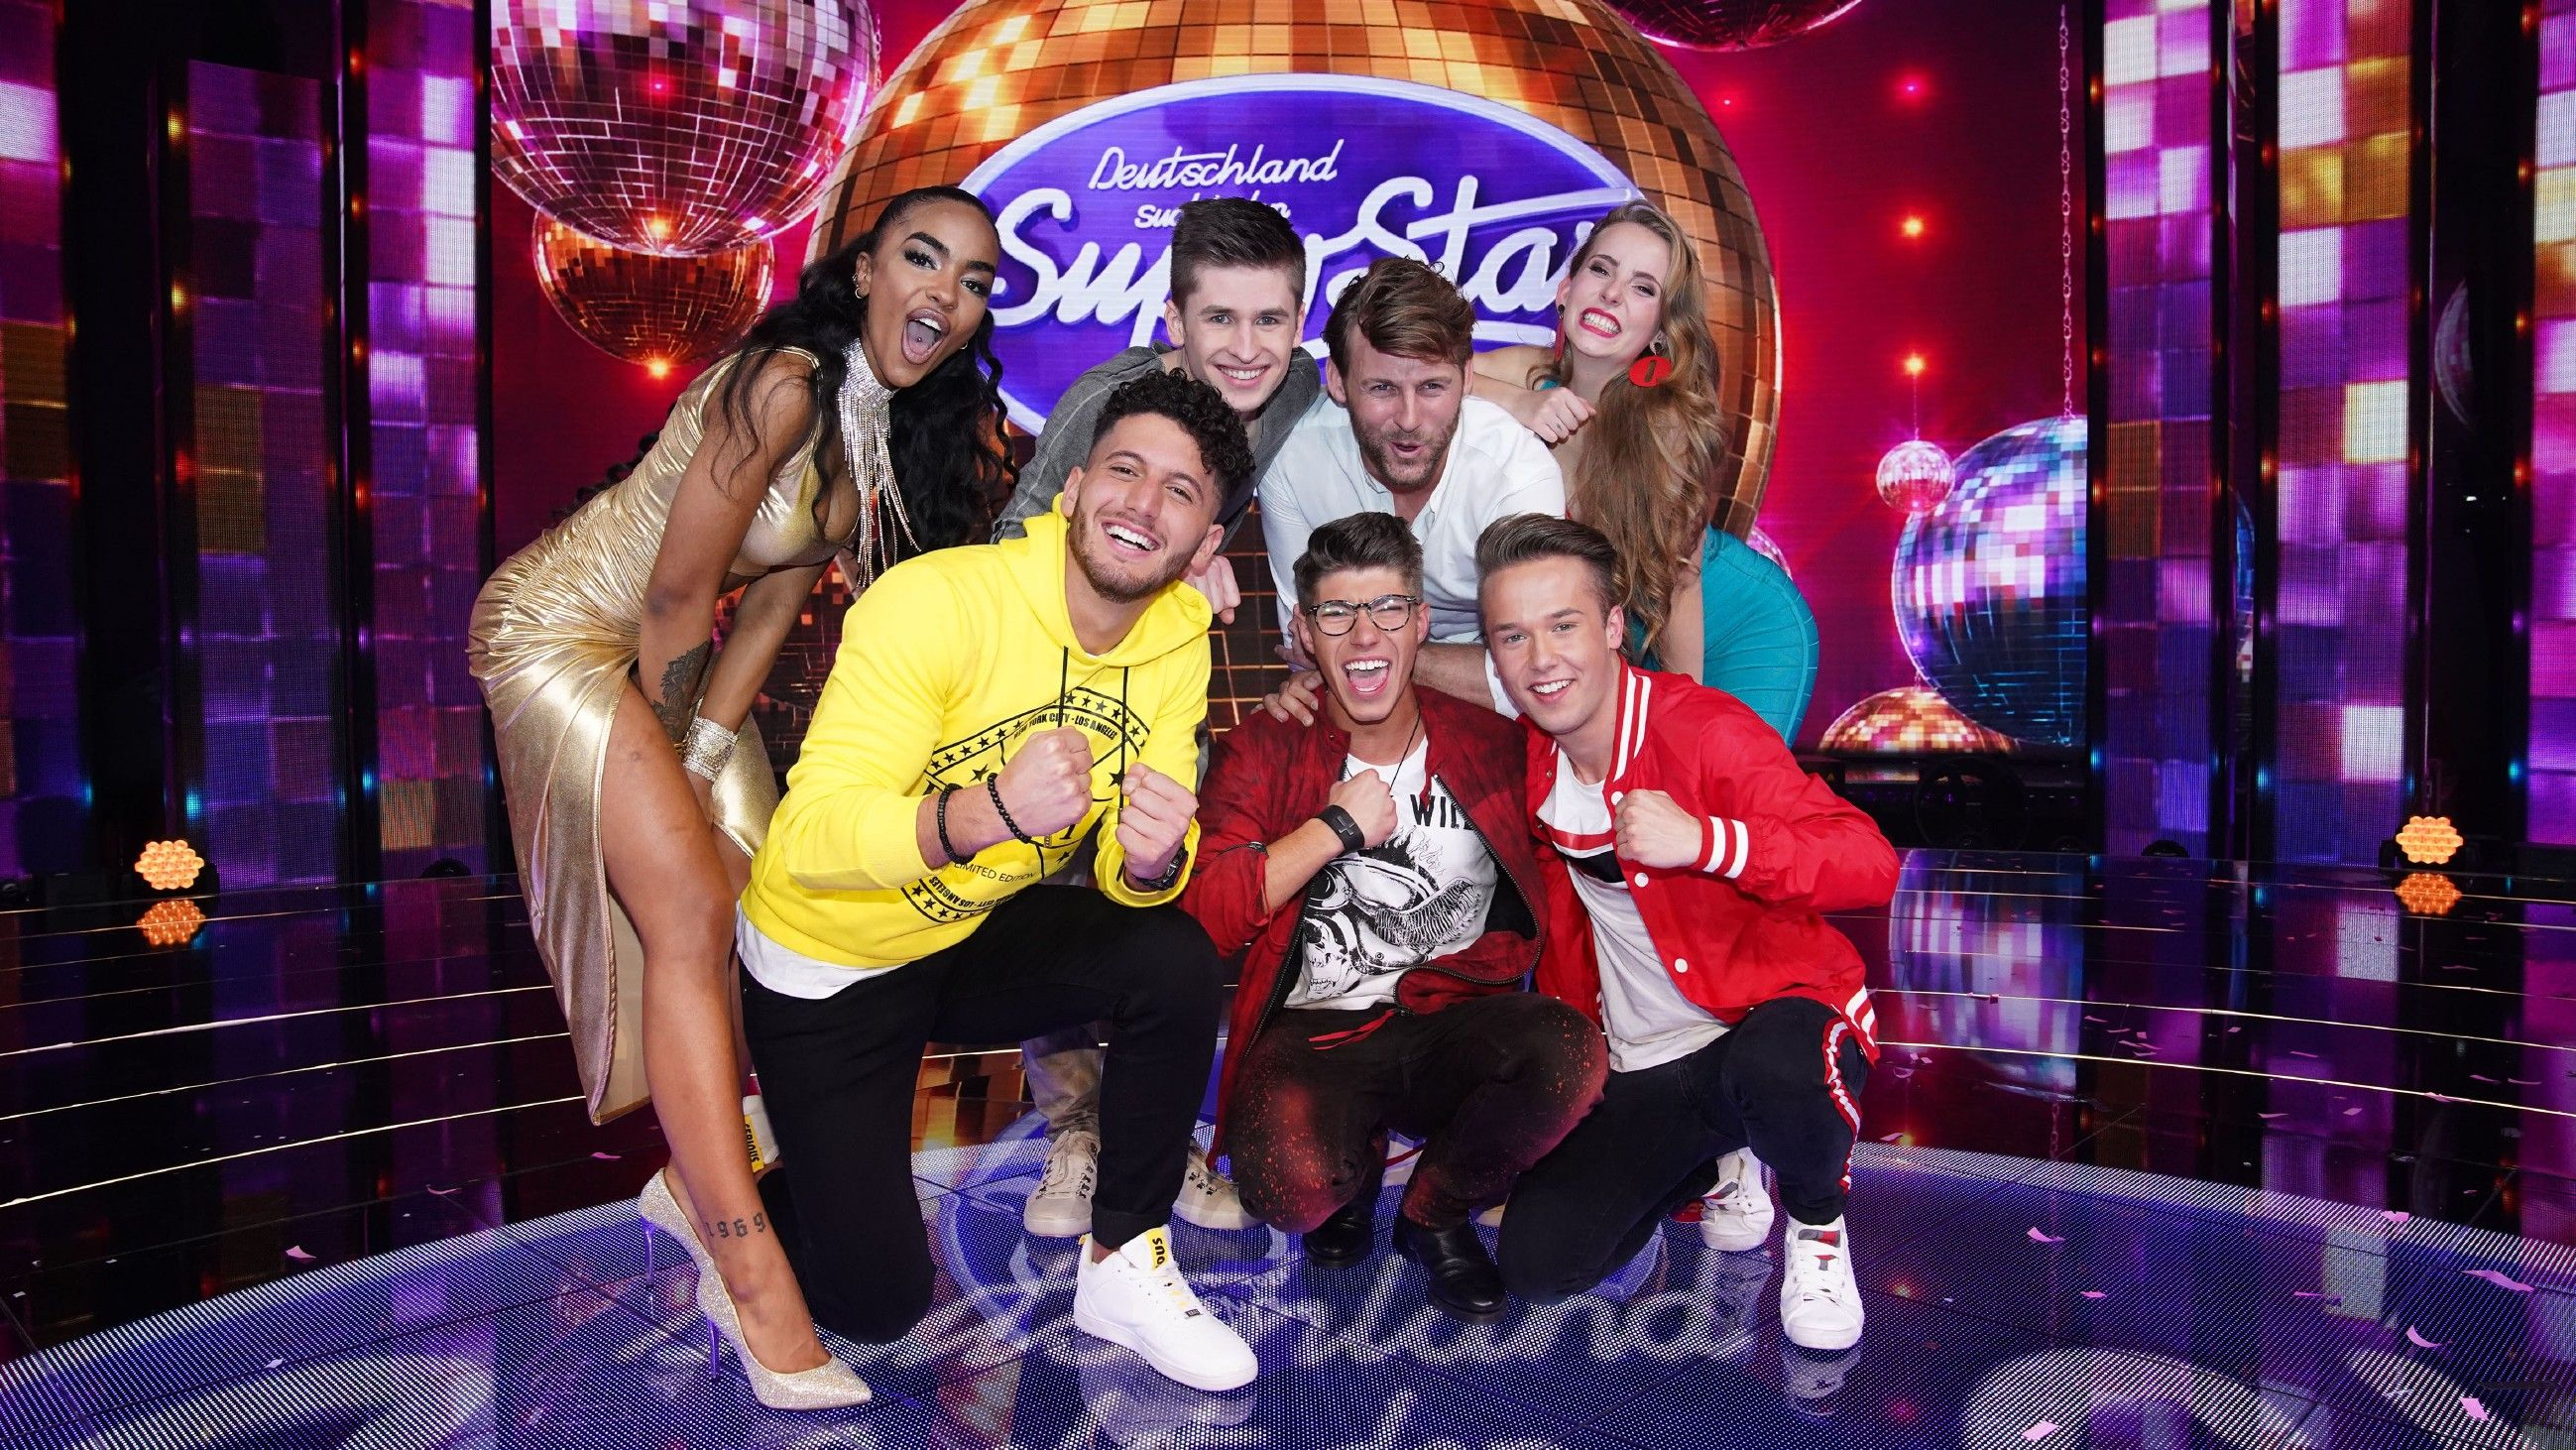 Dsds 2019 Mottoshow 2 Die Songs Heute Abend In Liveshow 2 Bei Rtl Dsds Bruce Springsteen Motto